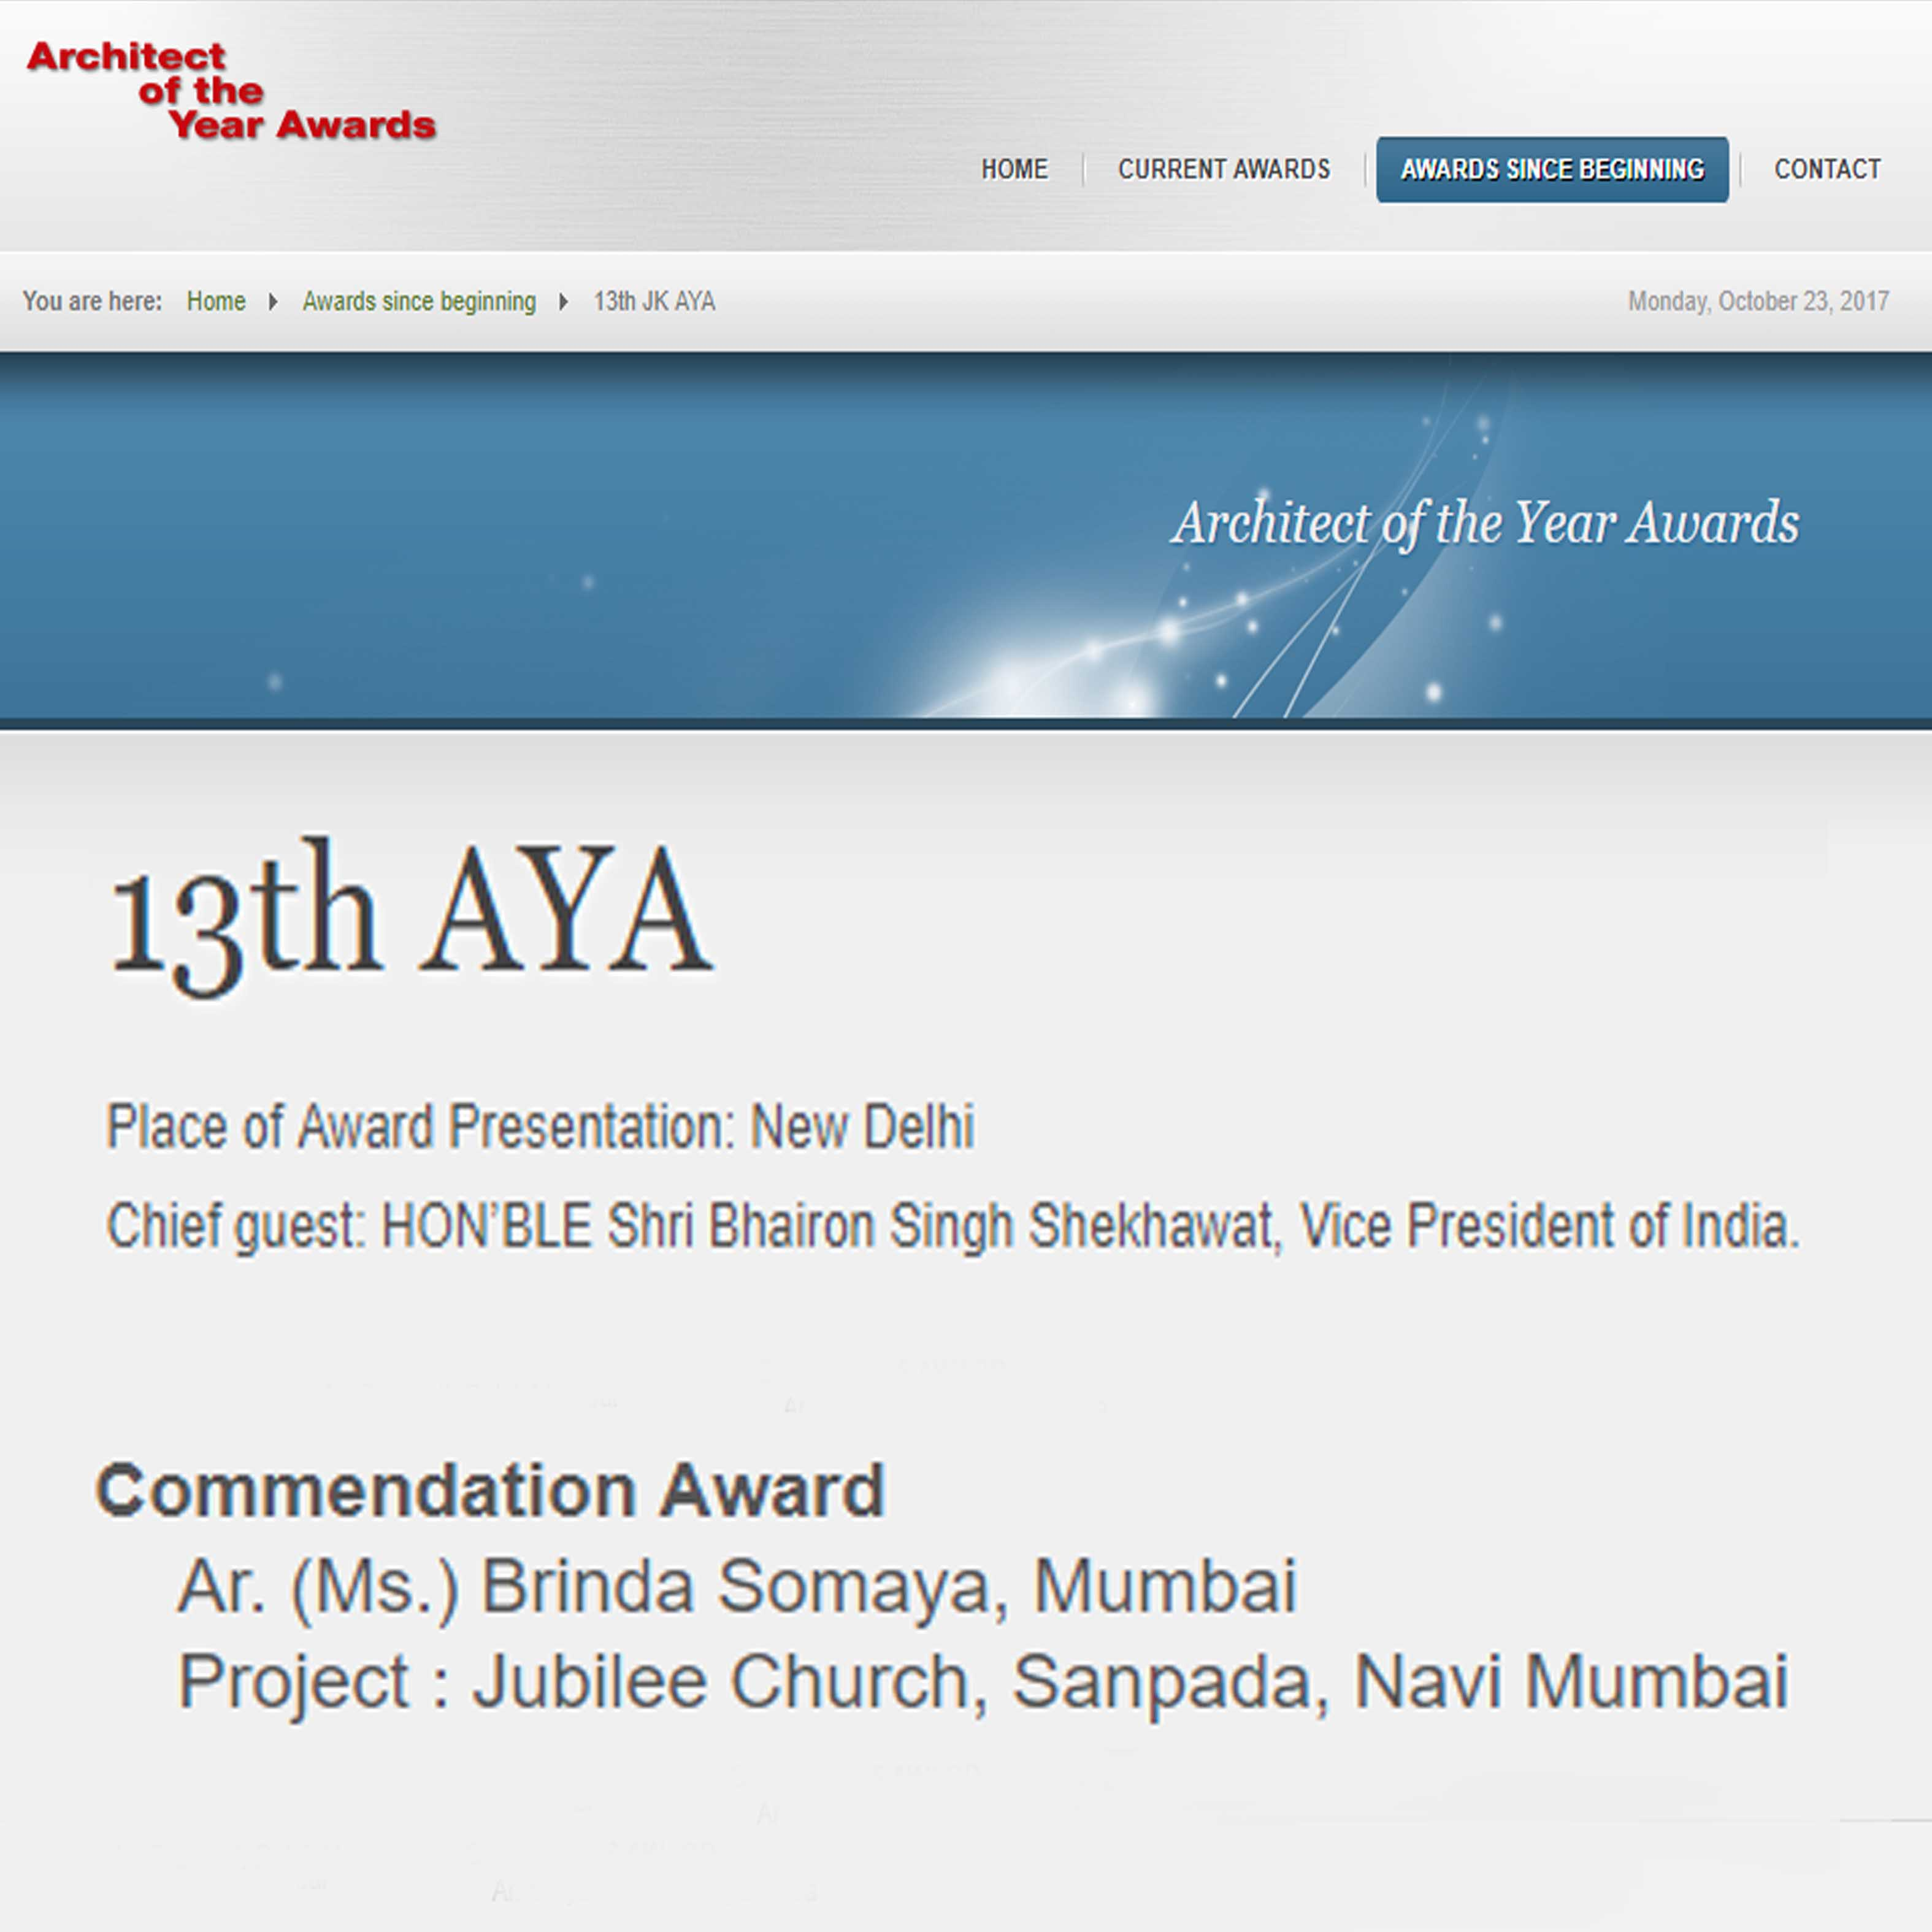 13th Architect of the Year Awards 2017 , 23 October 2017